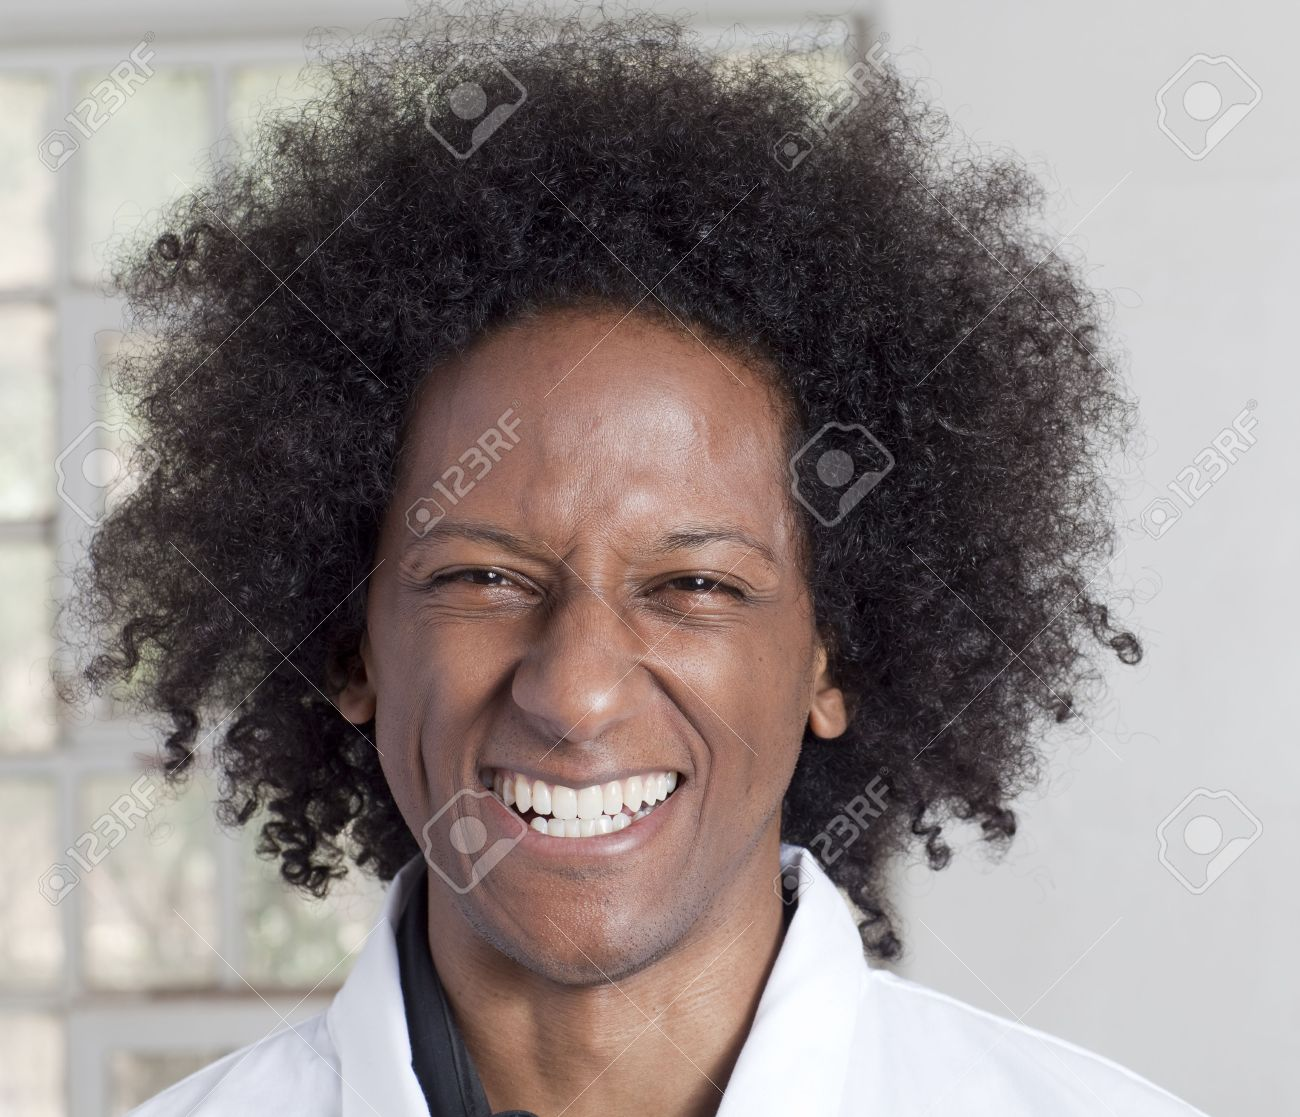 A young black man with an afro making various facial expressions while wearing a lab coat Stock Photo - 6649646